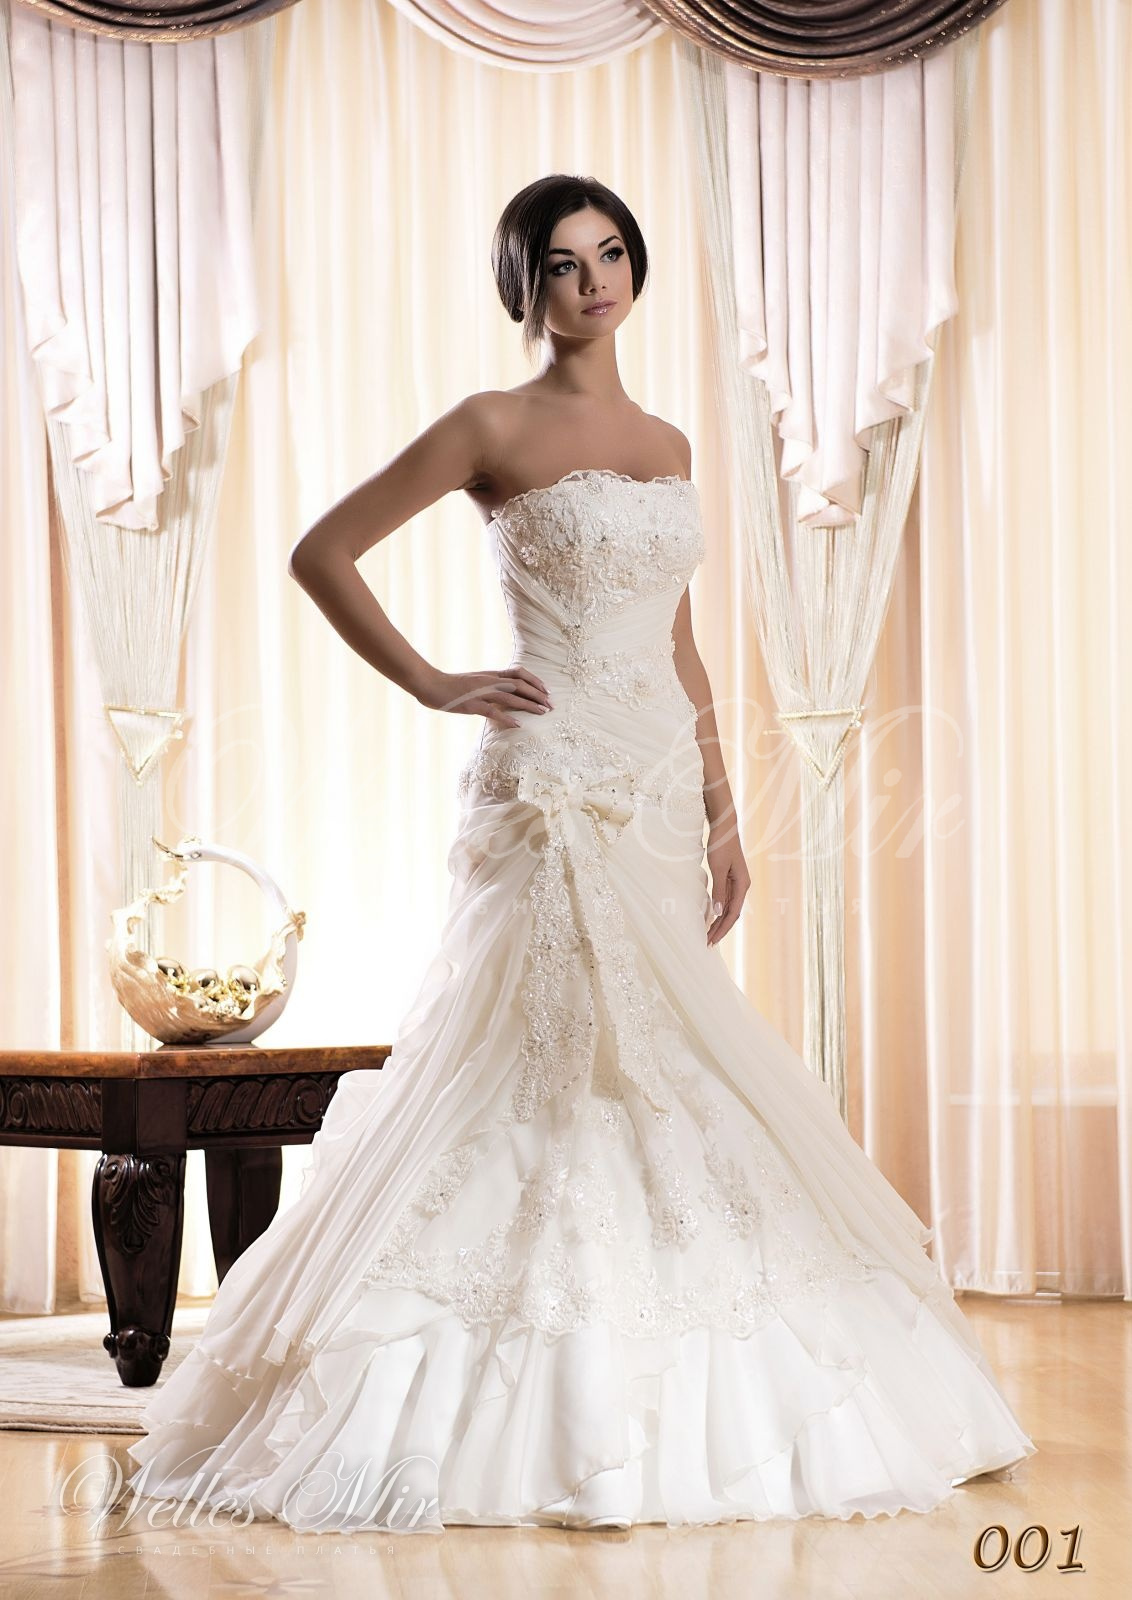 Wedding dresses 001